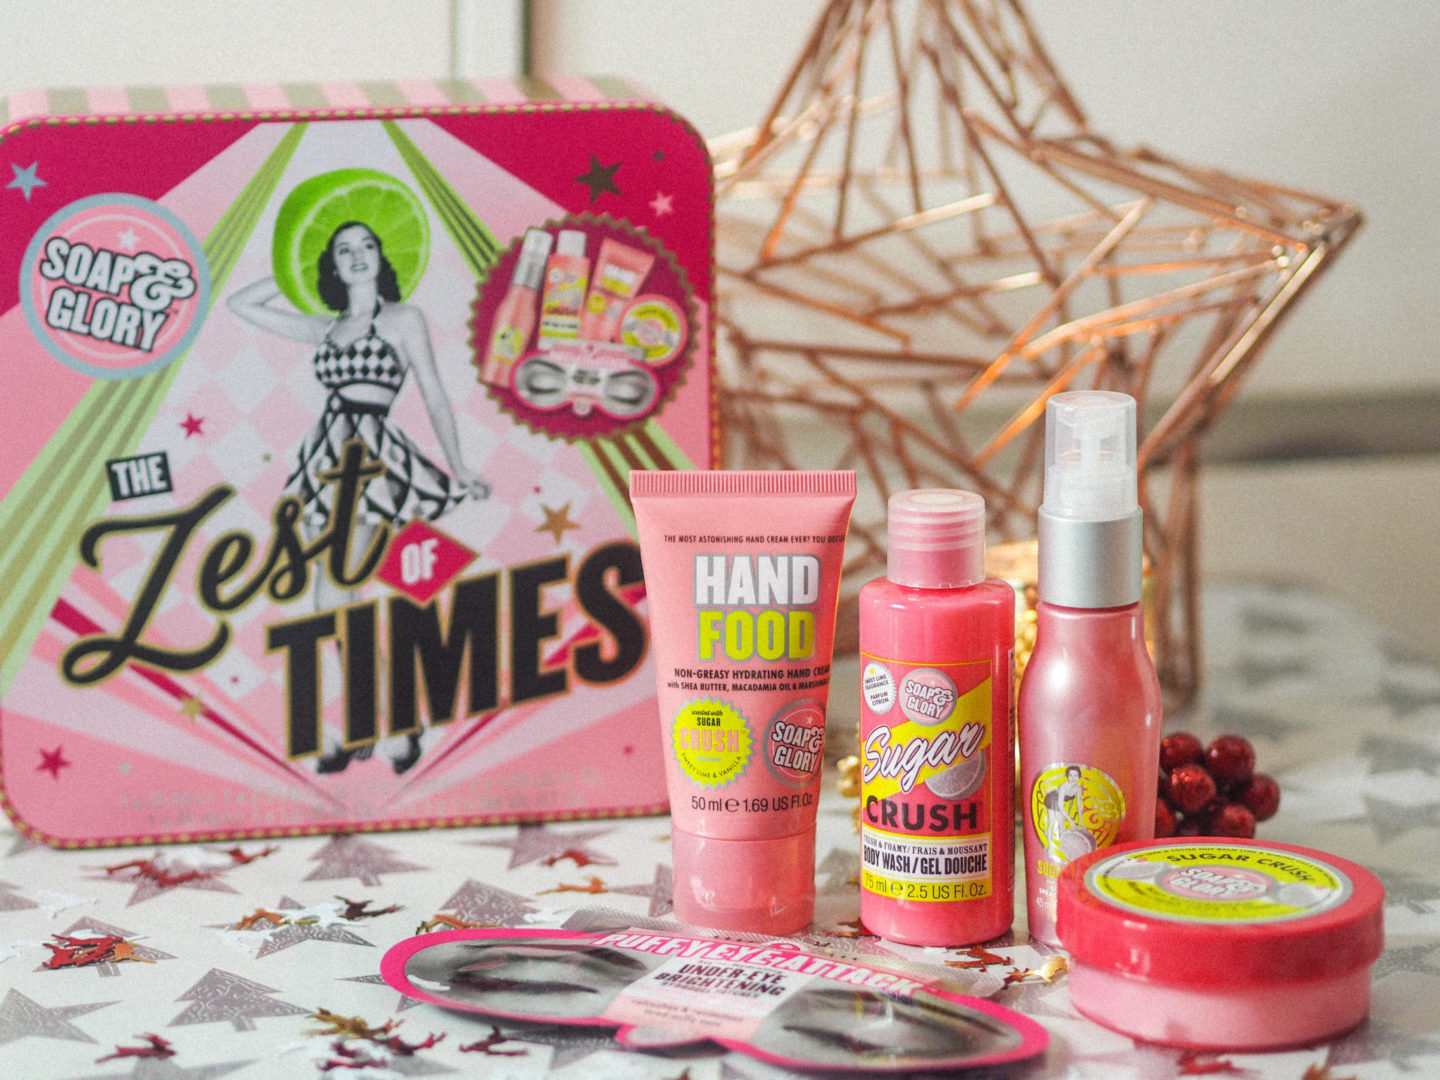 Win a Soap & Glory Zest of Times Giftset - Rachel Nicole UK Blogger